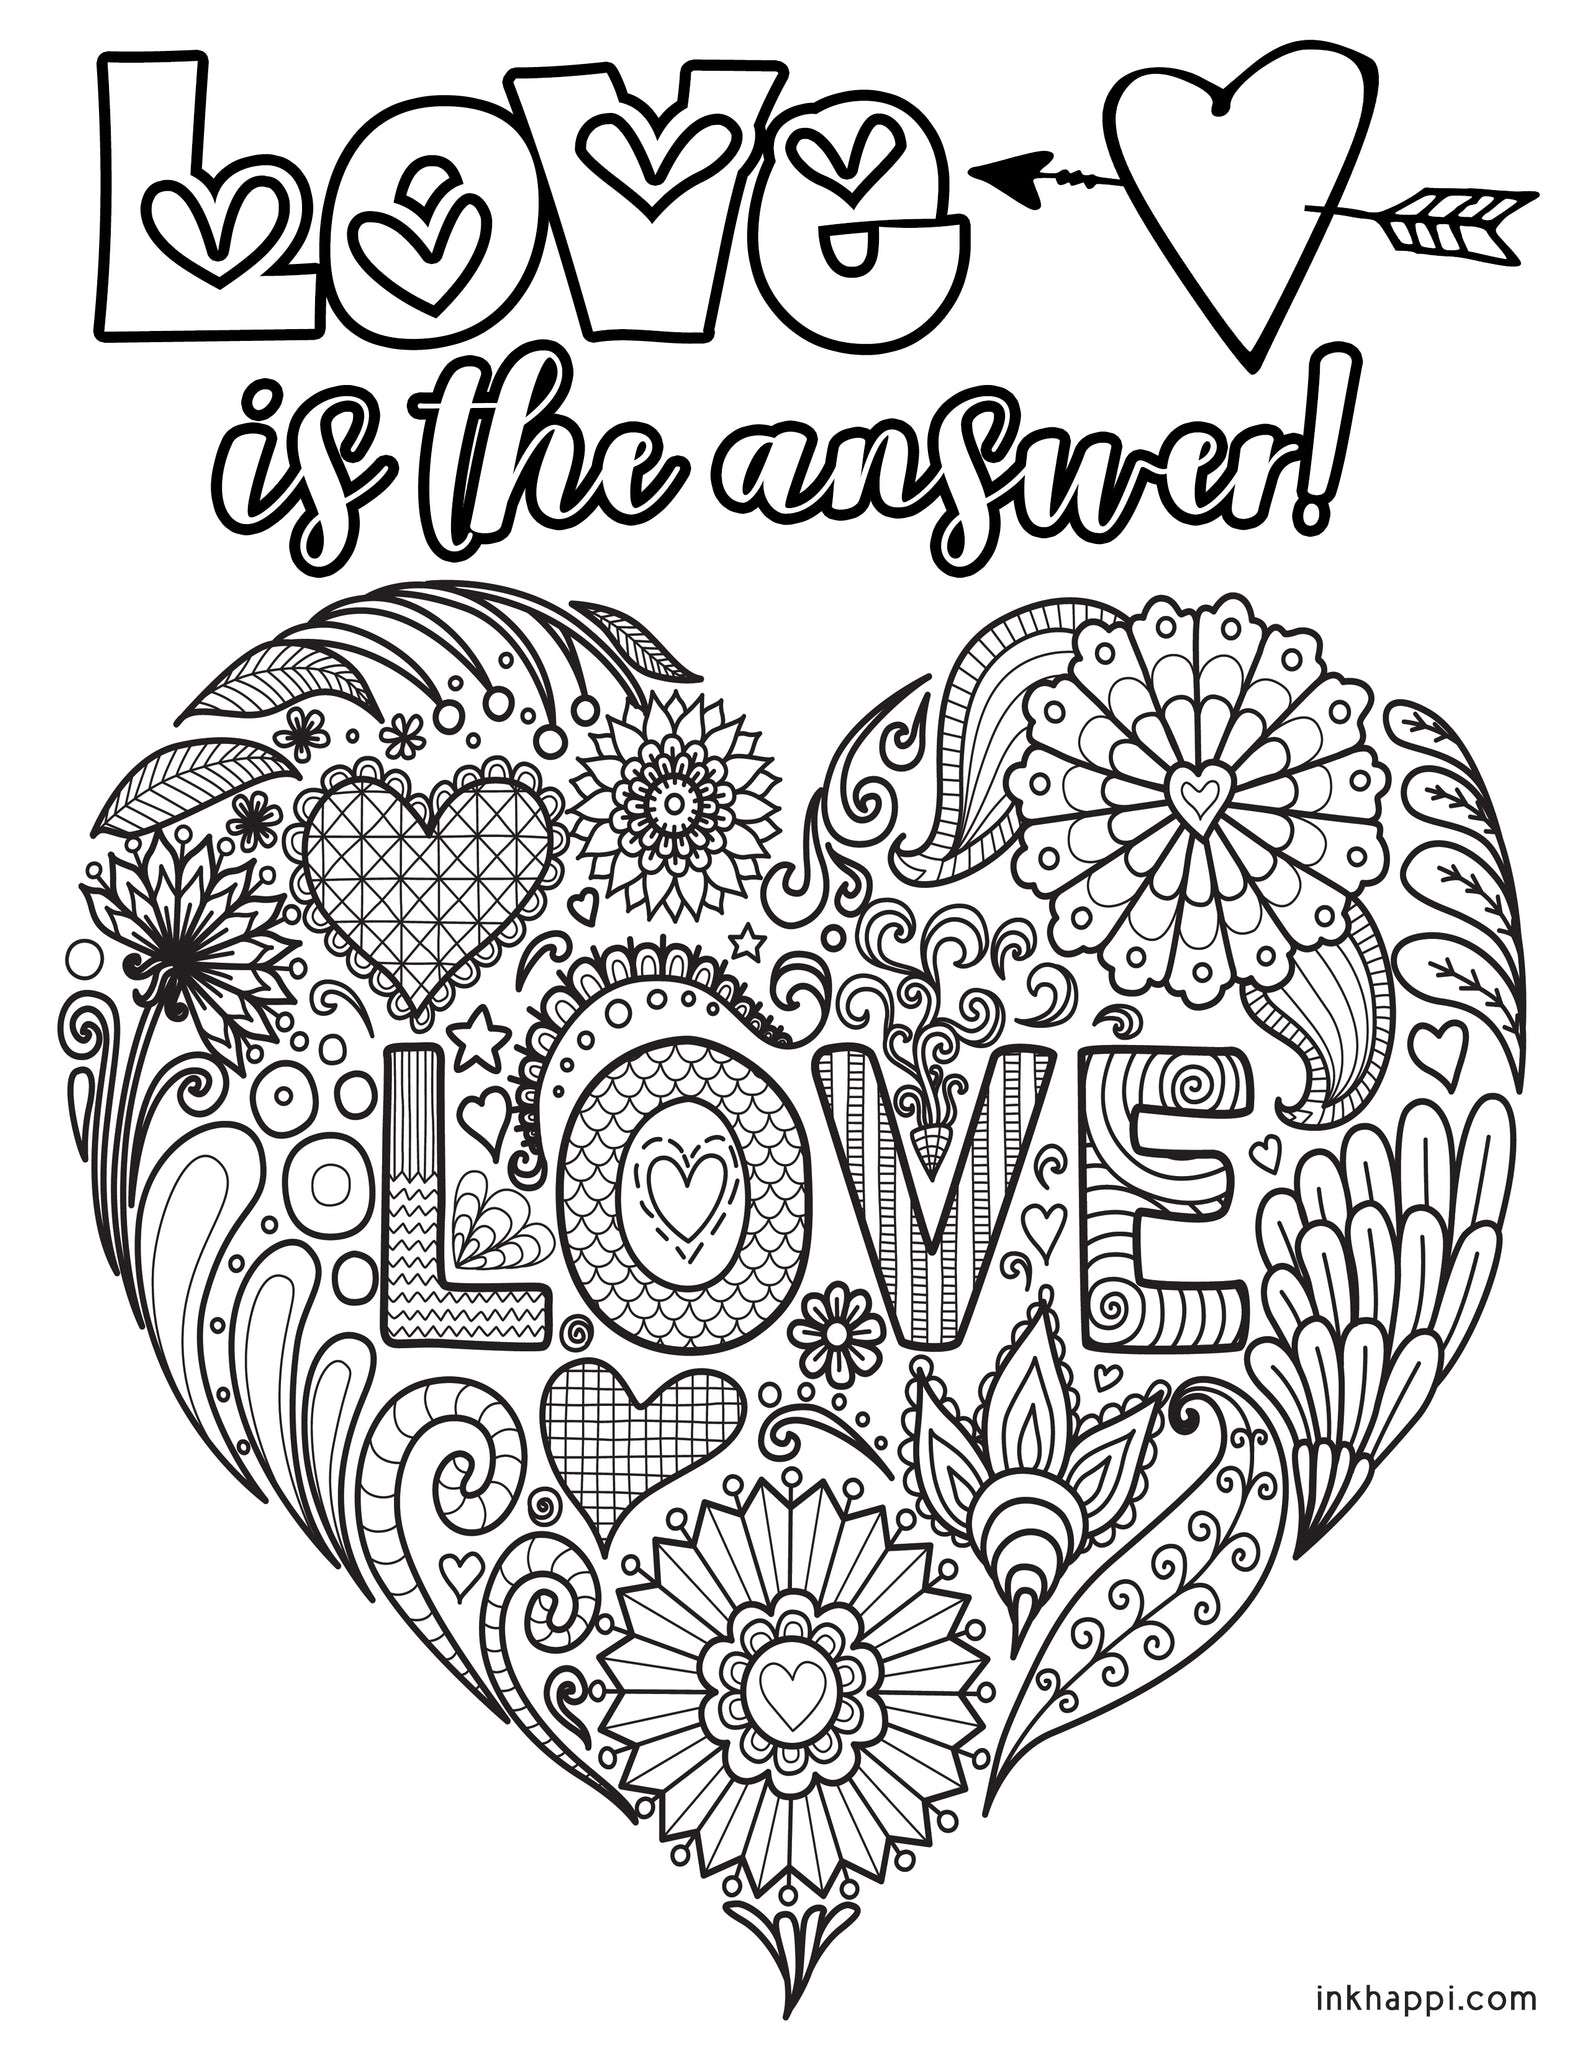 LOVE Coloring Pages – inkhappi